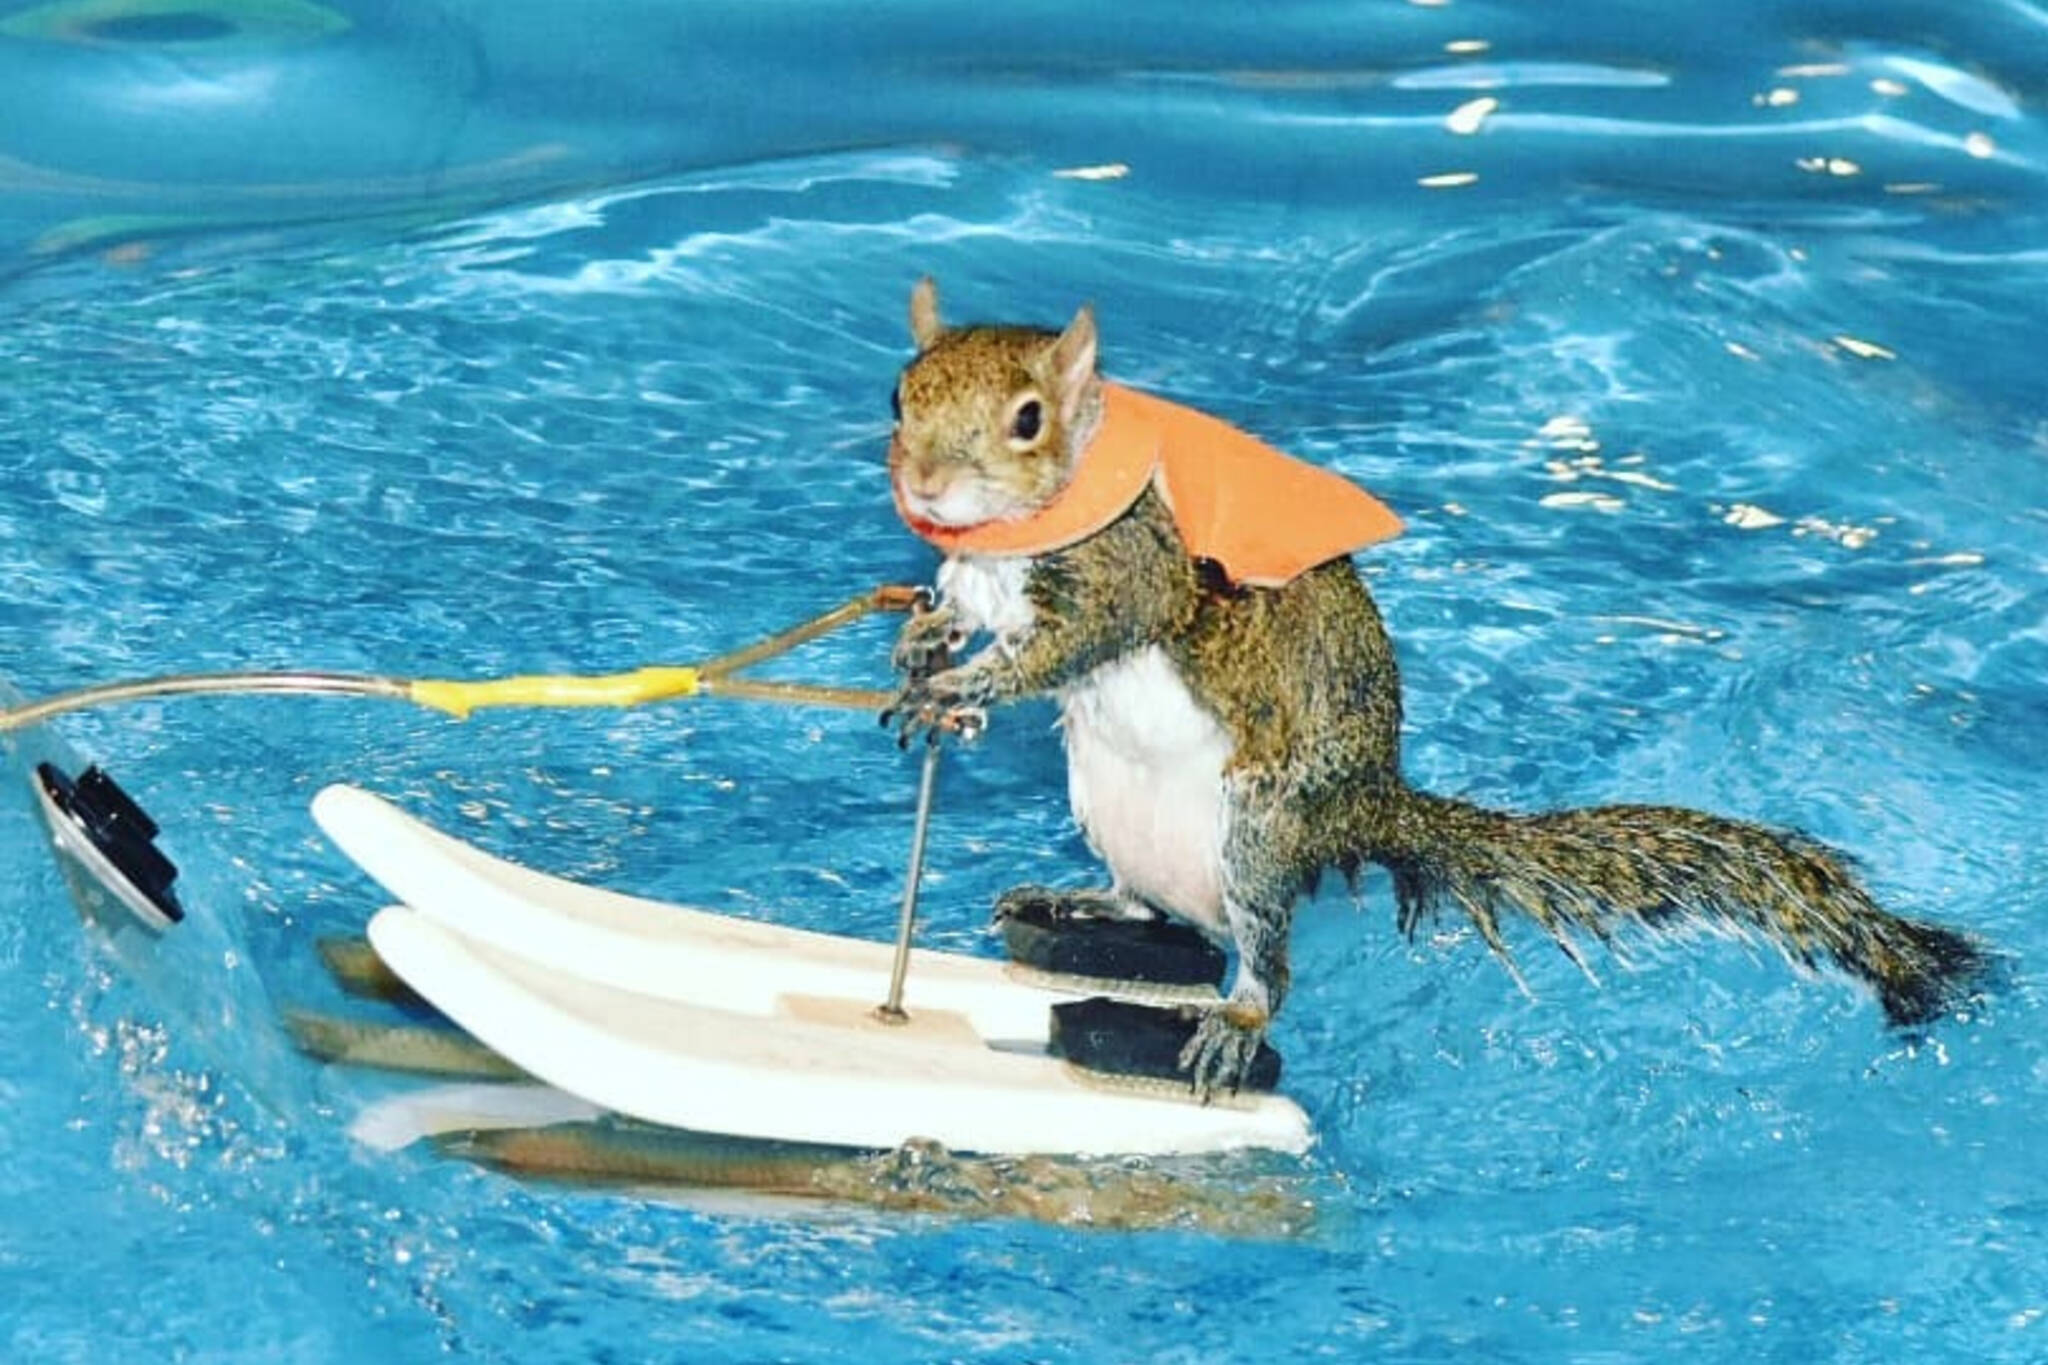 water skiing squirrel toronto